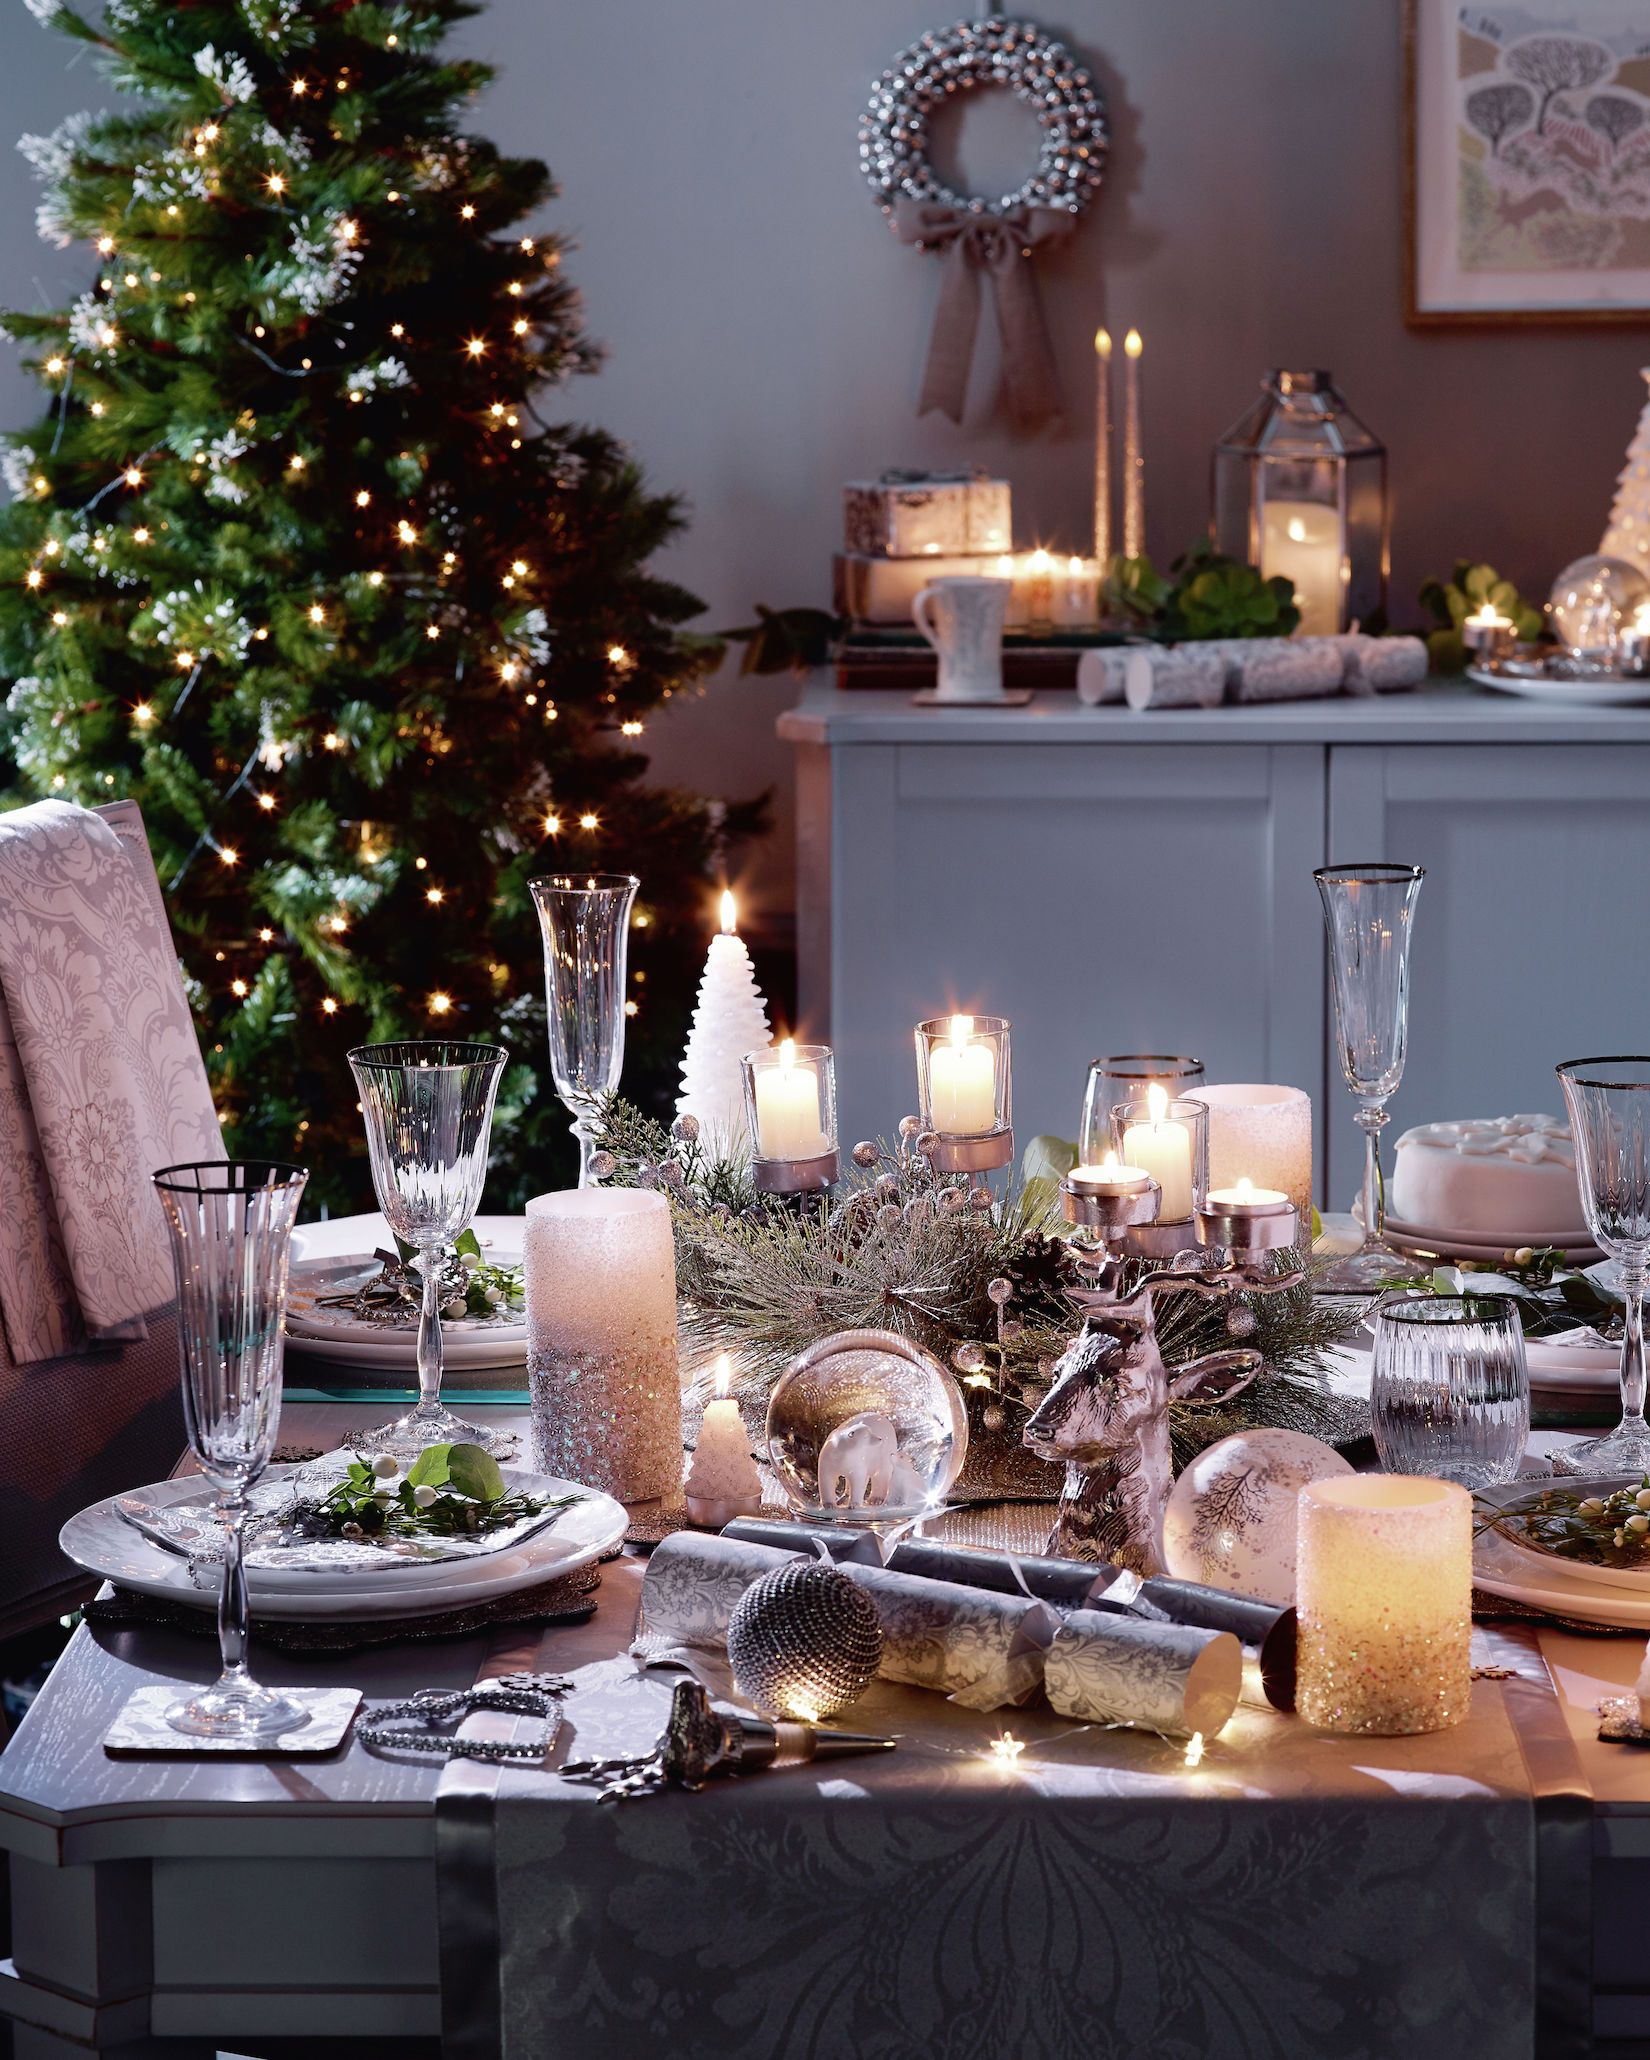 Laura Ashley Christmas dining table